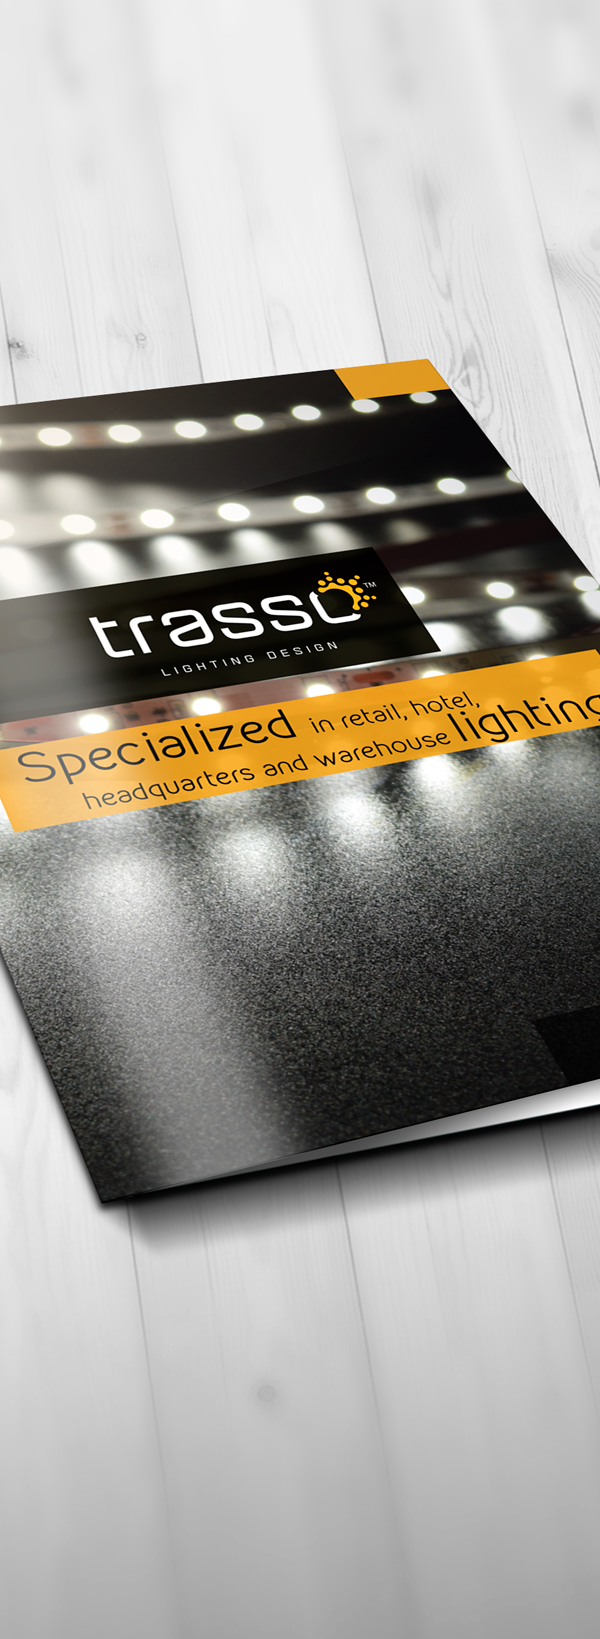 diptico para feira internacional trasso lighting design Trasso Lighting Design | Design Gráfico | Vídeo 30825419 450867288702550 1773636698 o 600x1639 portfolio Portfolio Dreamweb 30825419 450867288702550 1773636698 o 600x1639